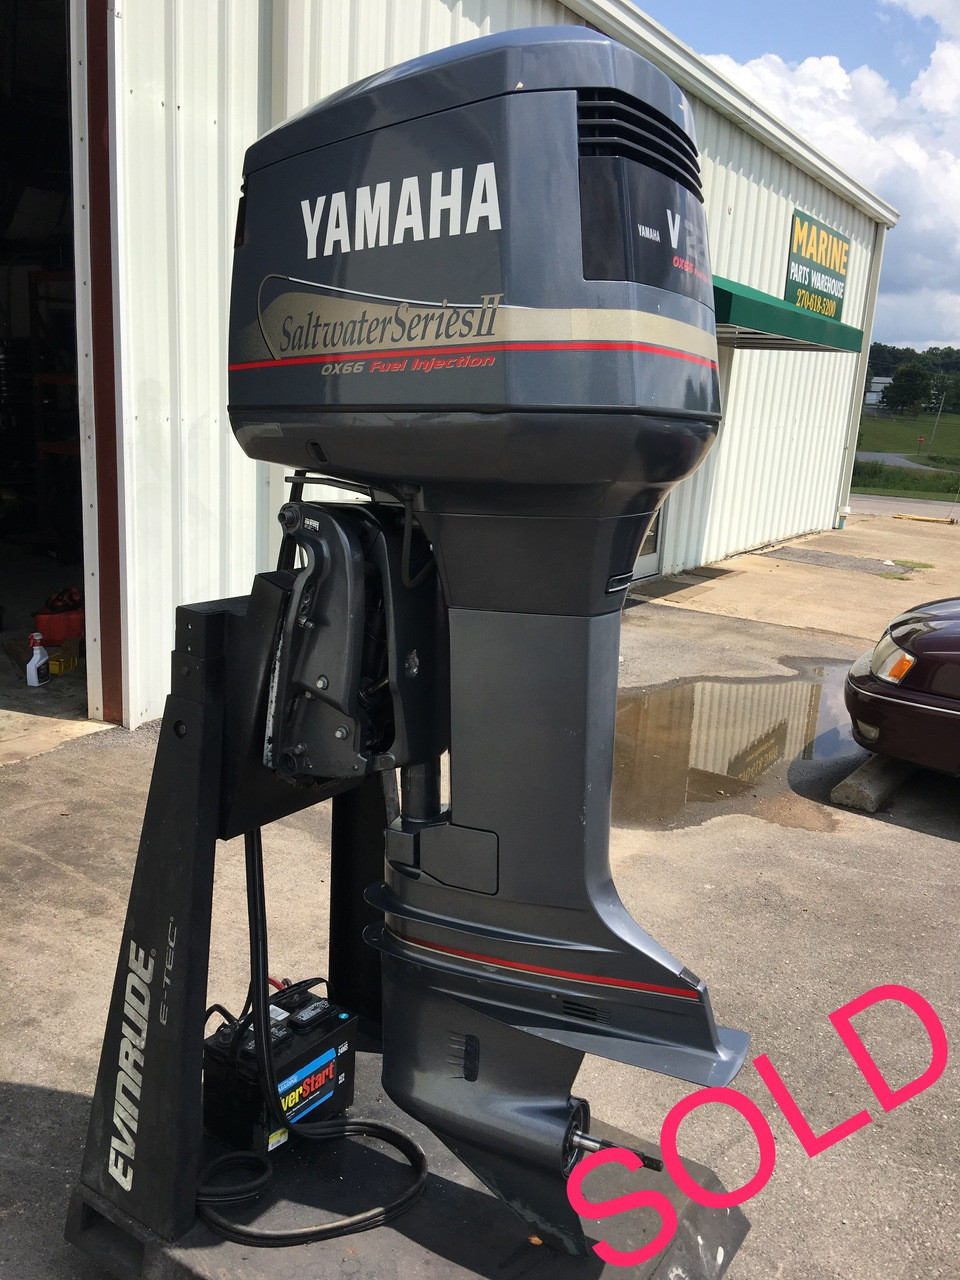 2001 yamaha v225 saltwater series ii ox66 fuel injection 3 1l v6 2 stroke 30 outboard motor [ 960 x 1280 Pixel ]